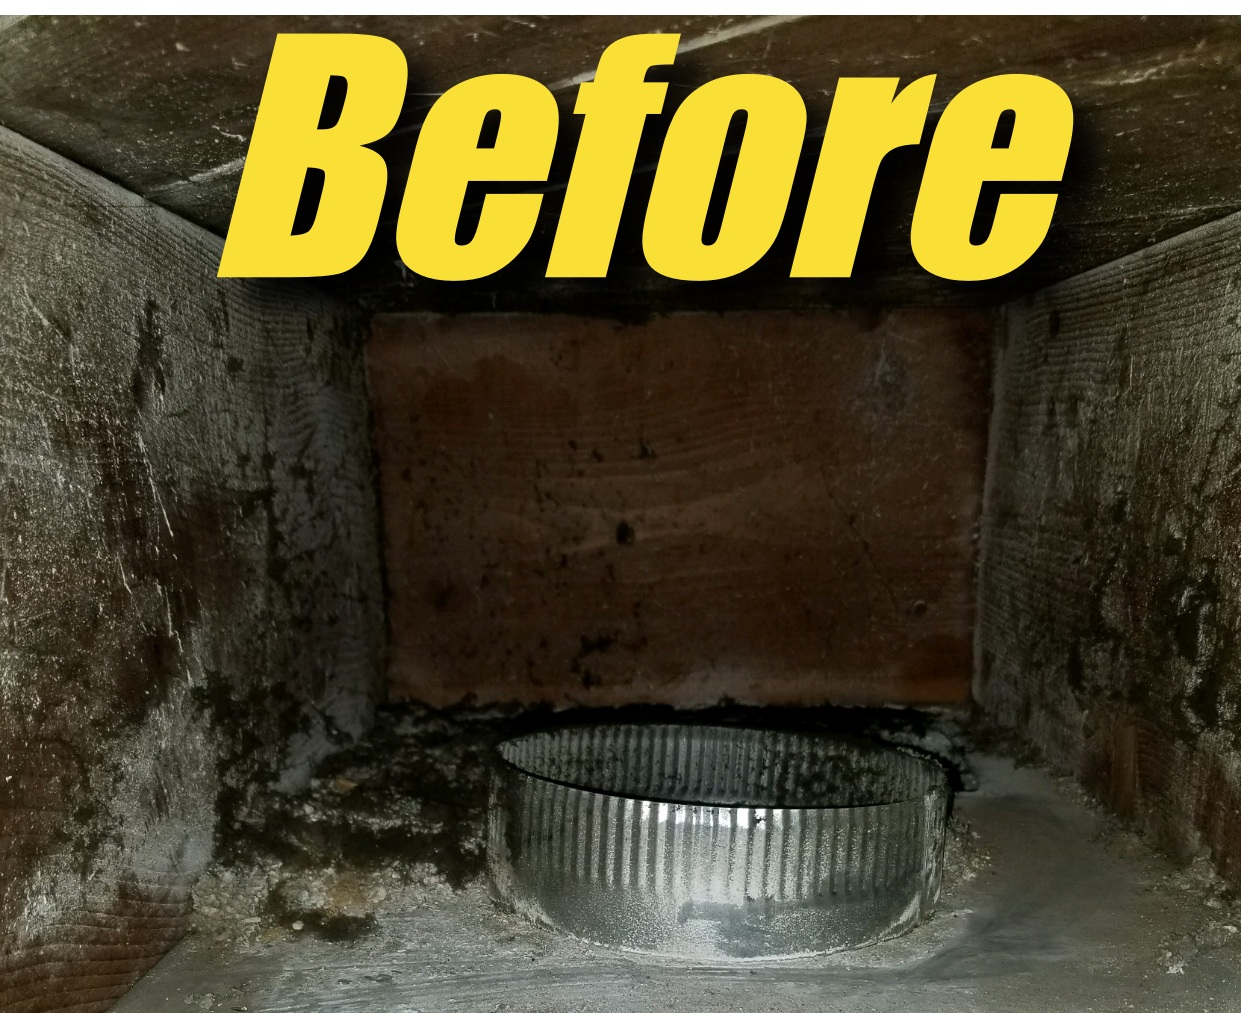 Scrubber Duct did a great job on my new home! They were very easy to work with, and very friendly. The before and after photos were great to see.